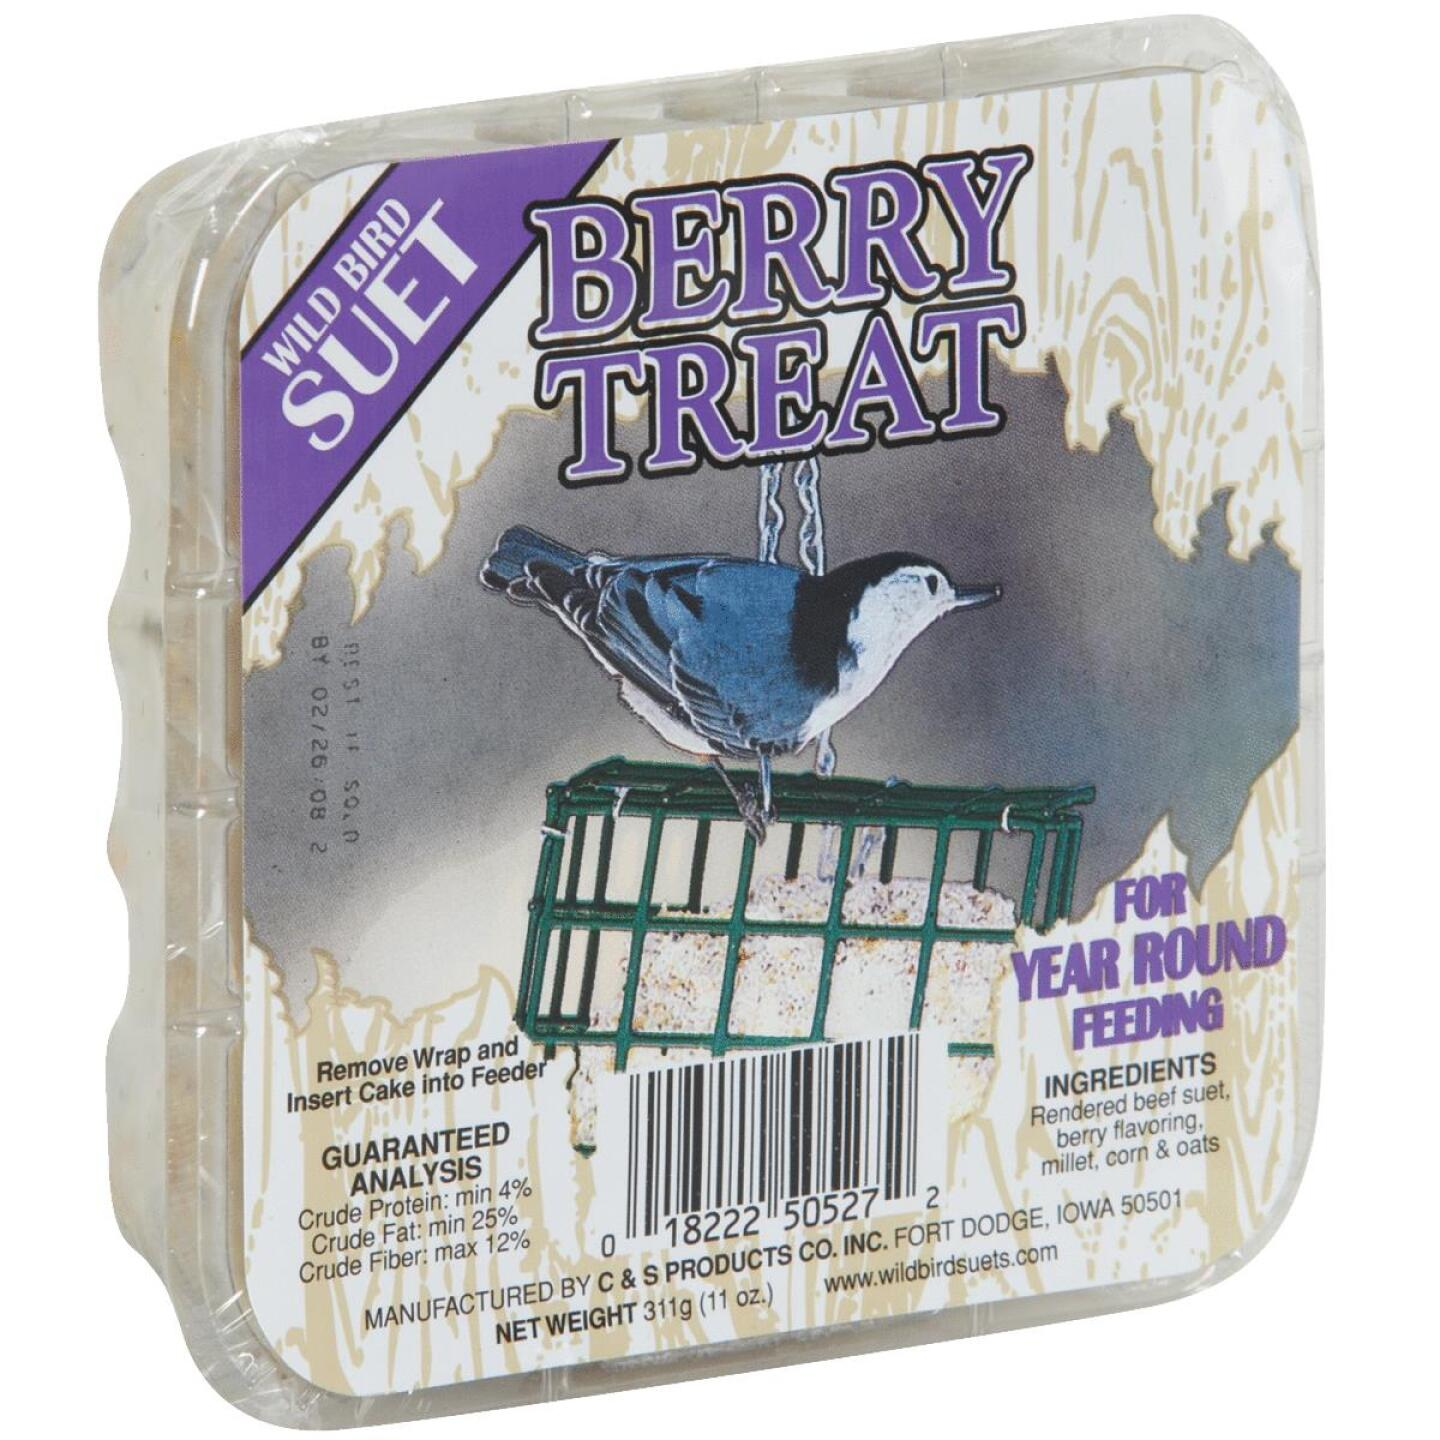 C&S 11 Oz. Berry Treat Wild Bird Suet Image 1